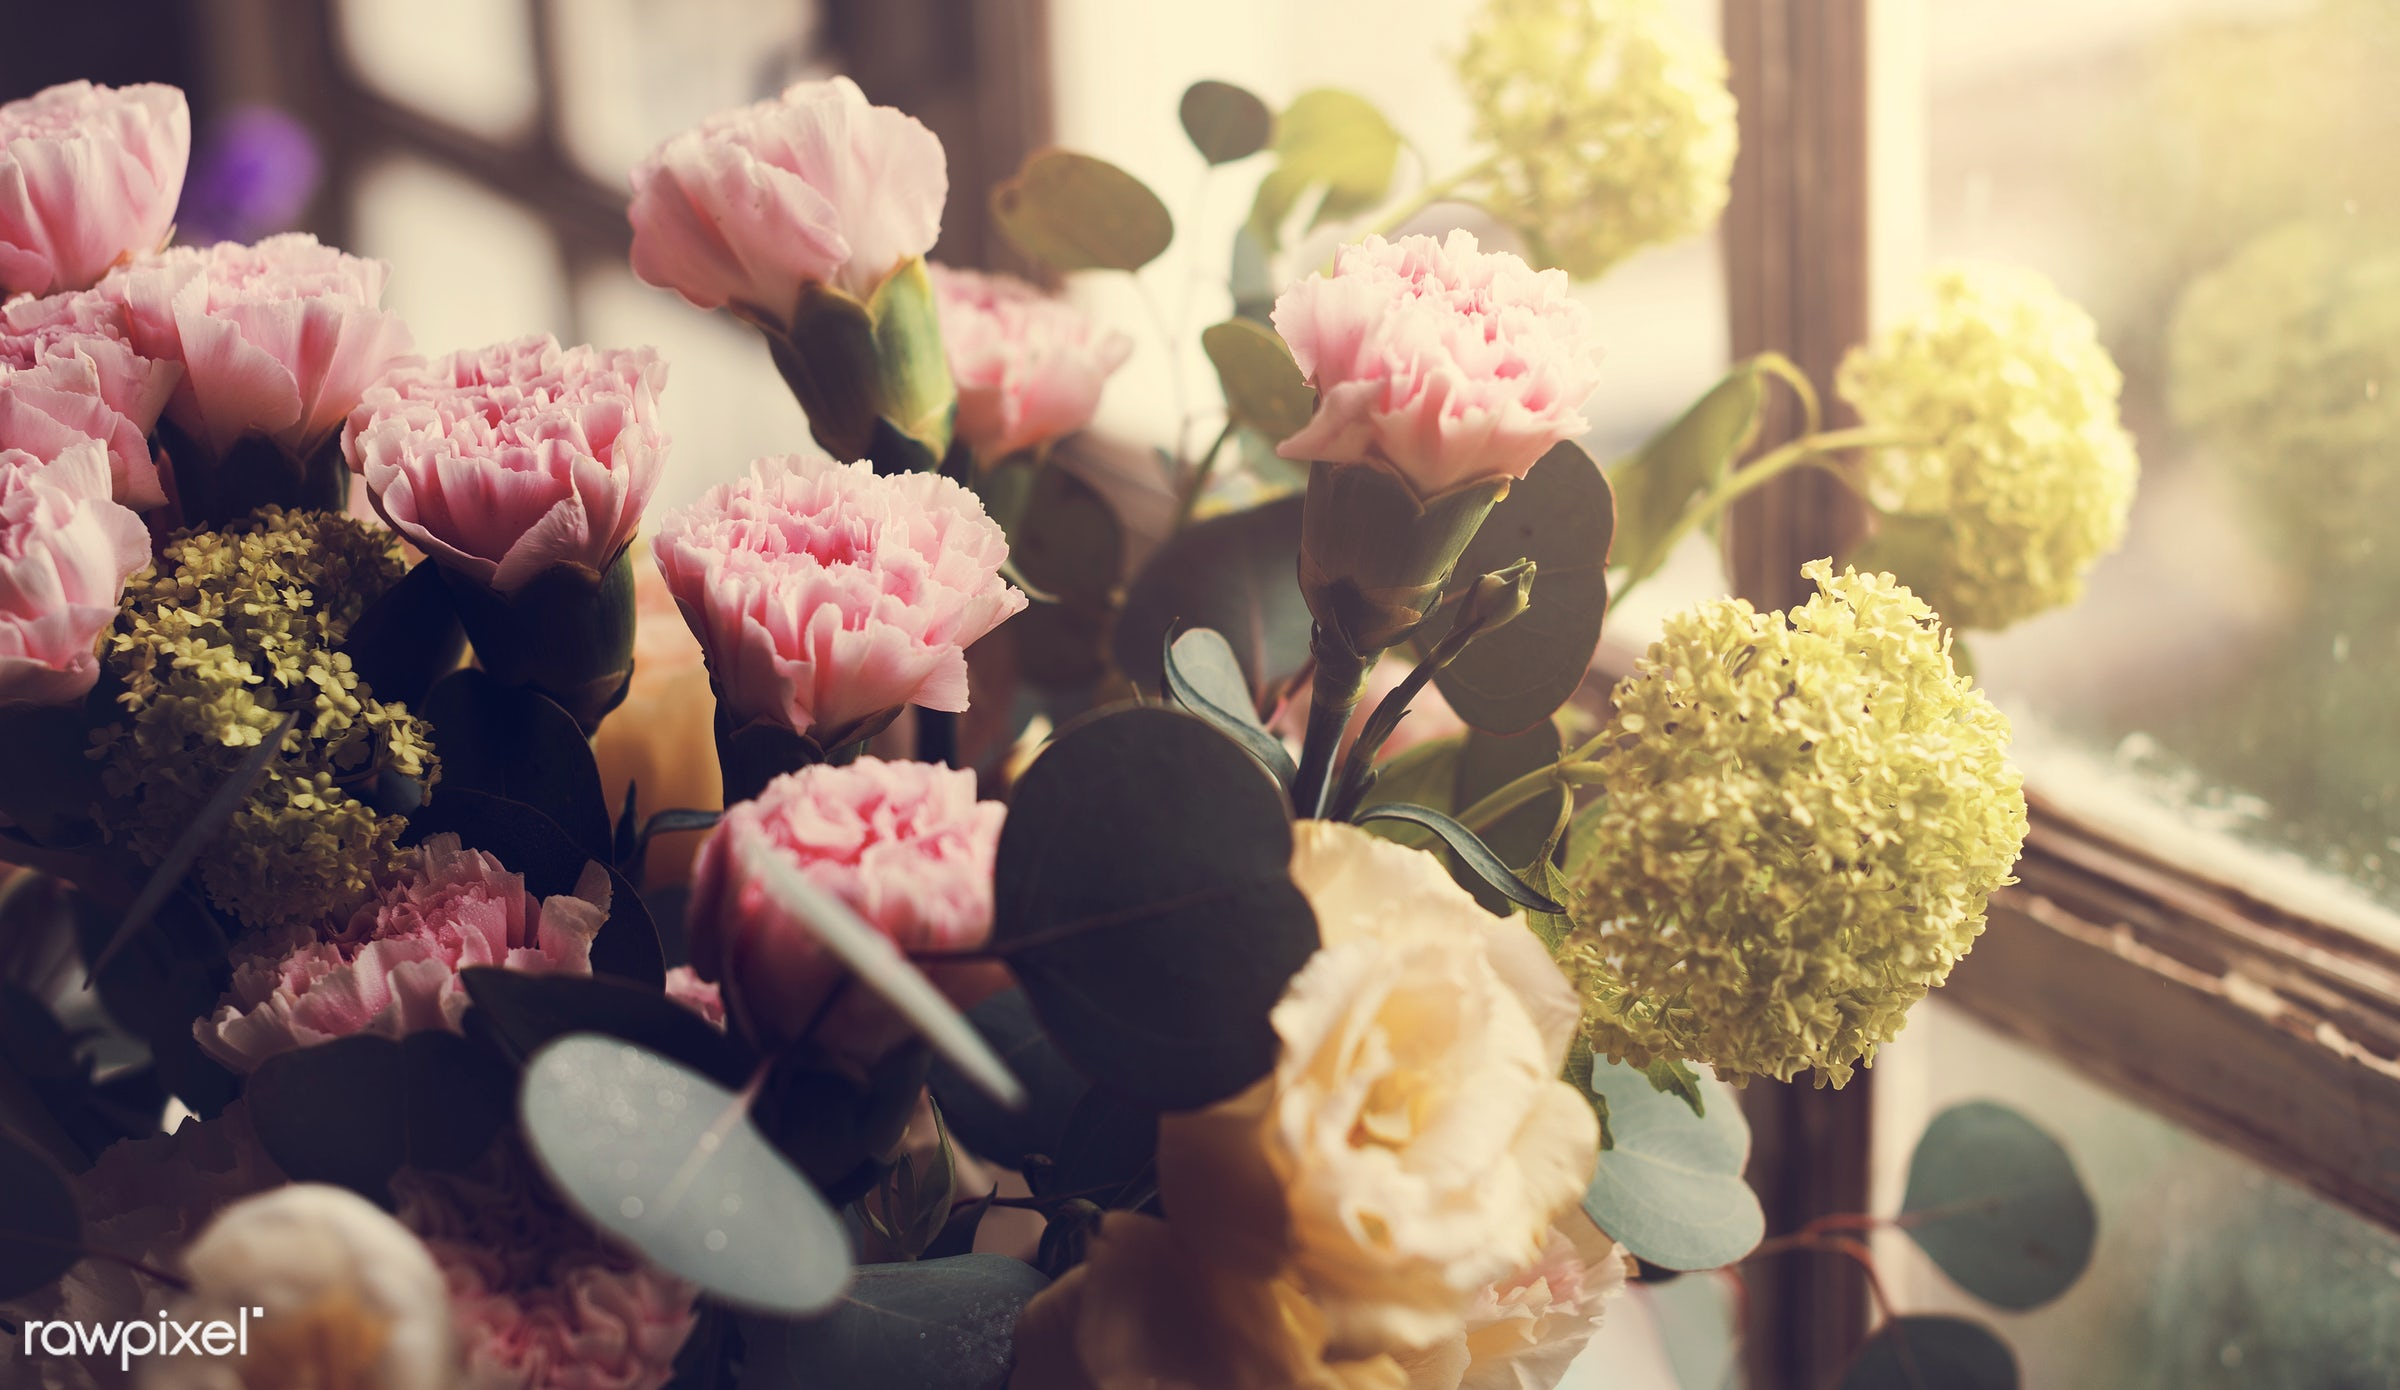 bouquet, craft, aromatic, decorative, beauty, spring, rustic, blossom, nature, style, vintage, decoration, flora, art,...